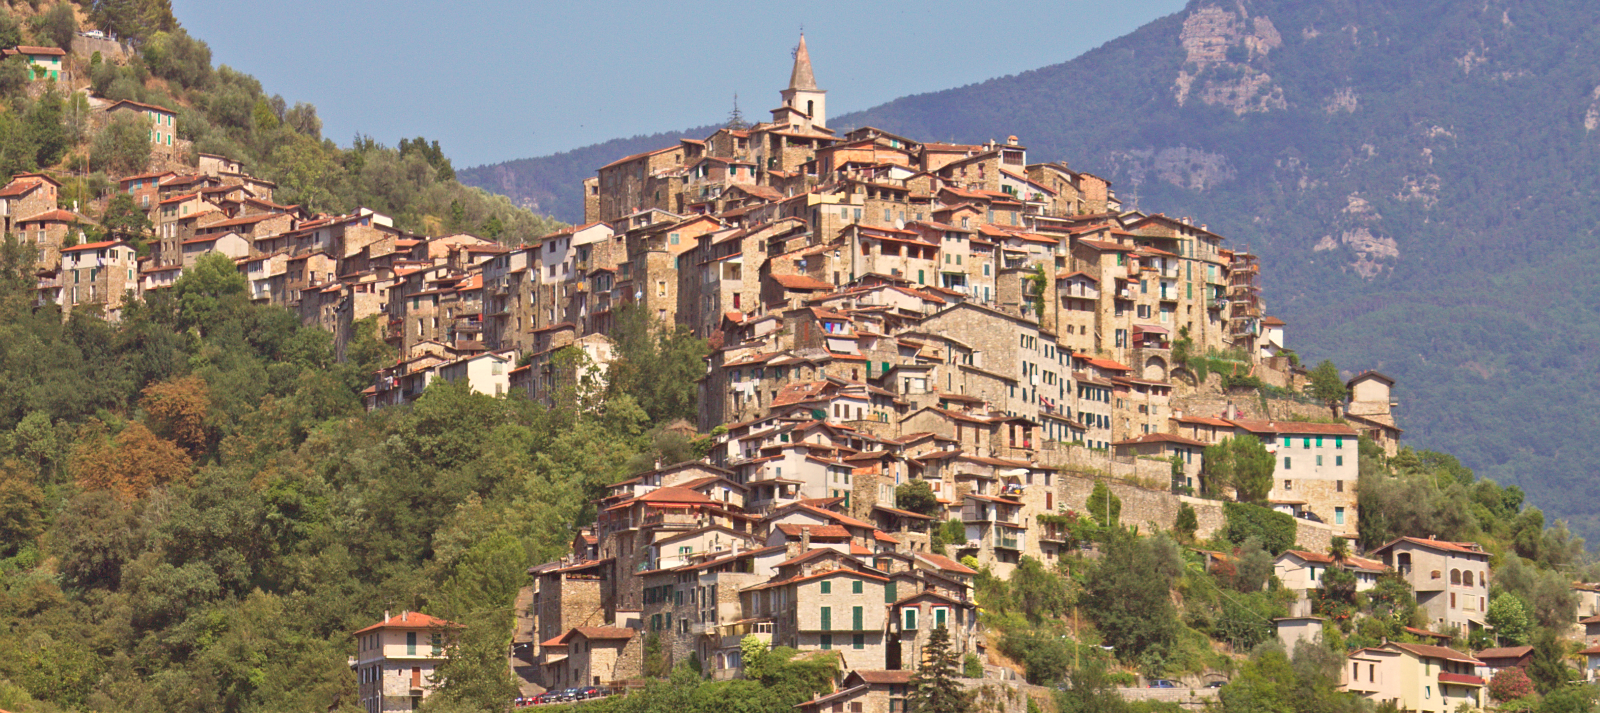 West Riviera, the perched medieval villages of Dolceacqua and Apricale